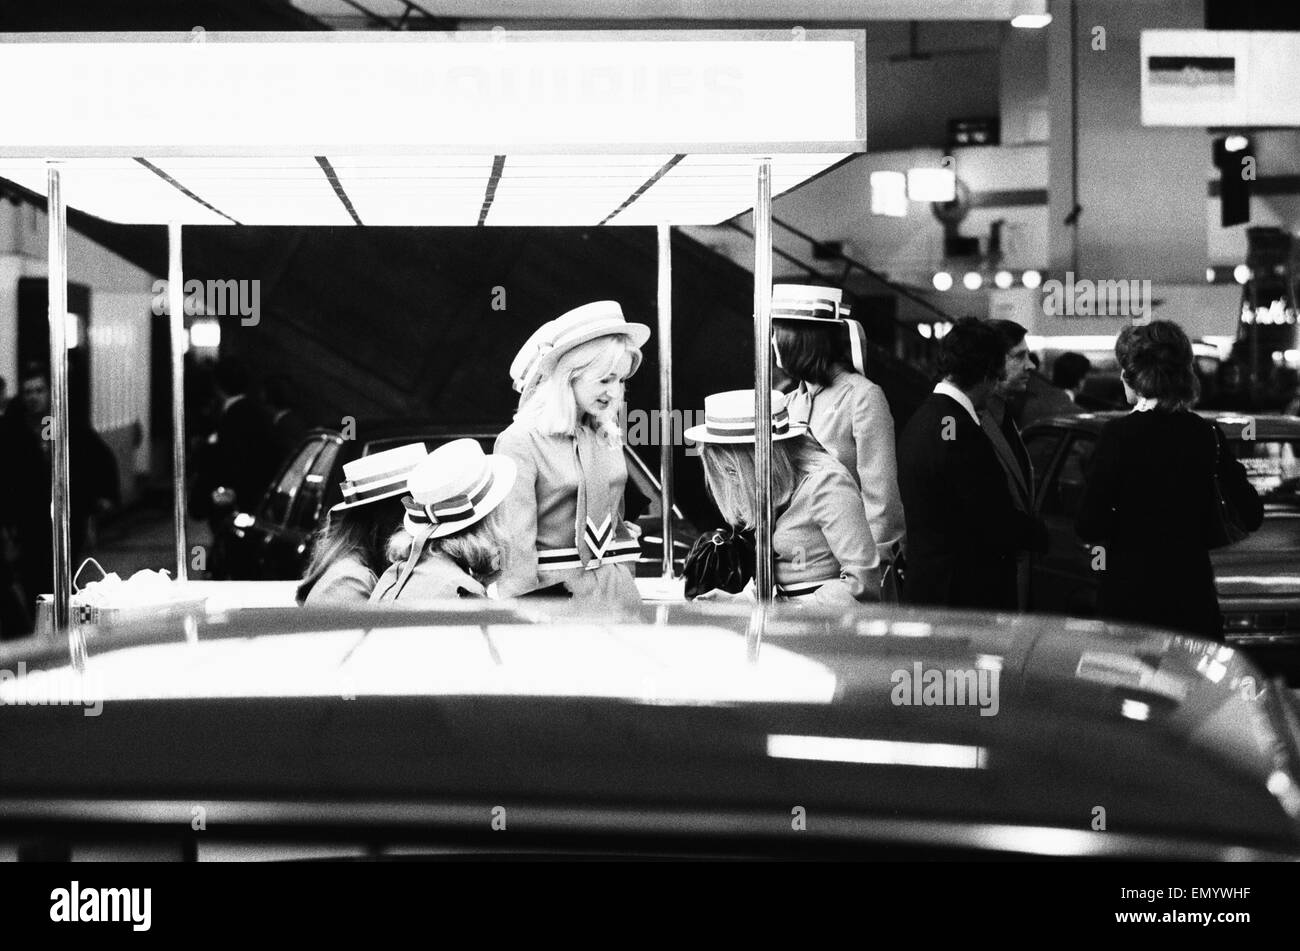 Some of the stall attendants on the Lancia stand at the 1972 Motor Show at Earls Court seen here having a chat. - Stock Image